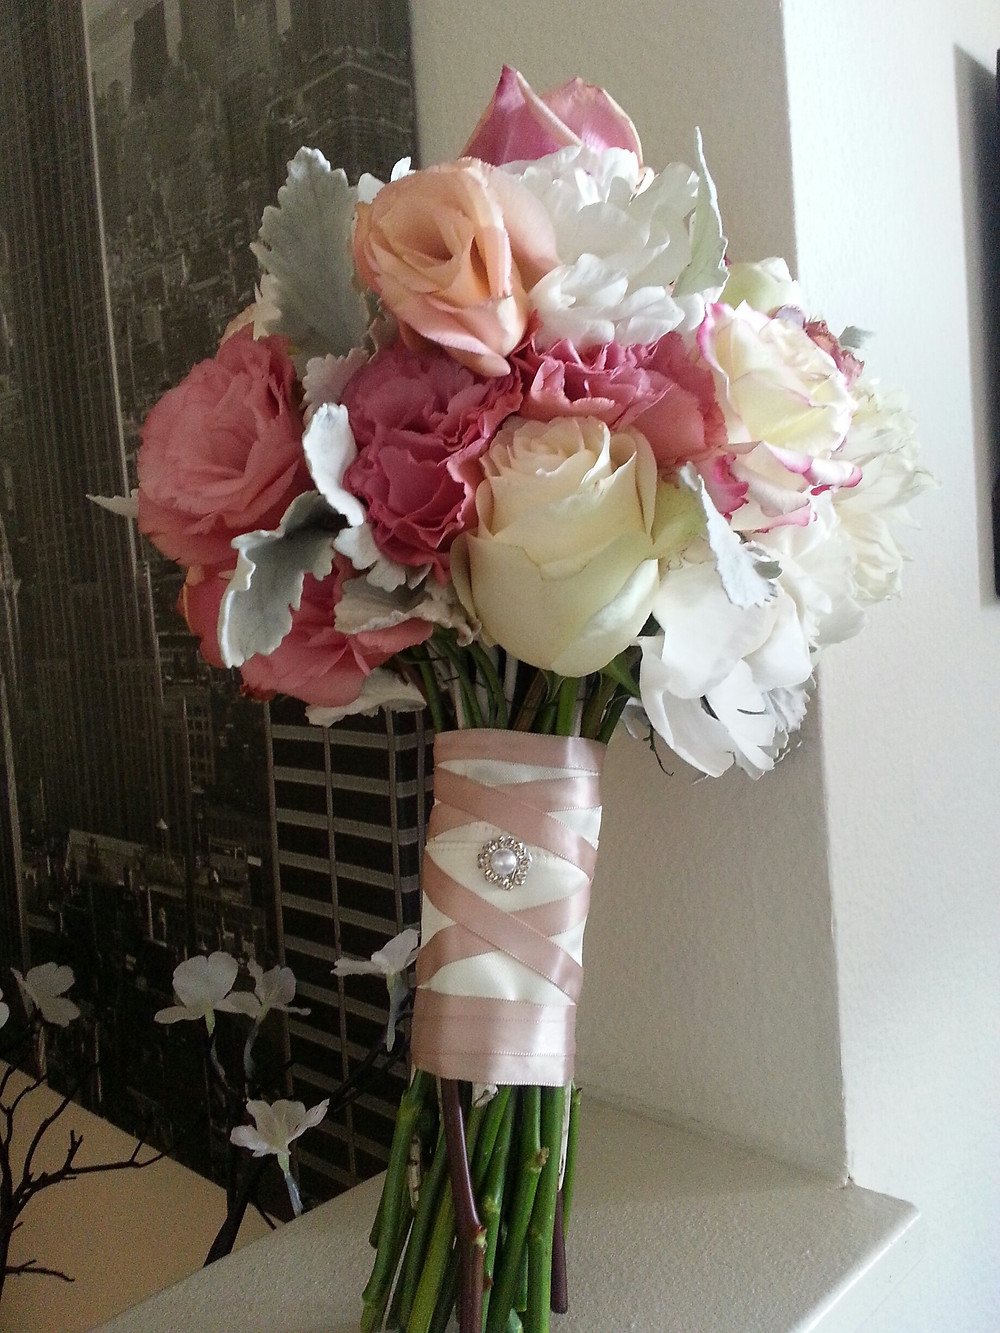 Roses Peony Dusty Miller bridal bouquet by Dolce Vita Events